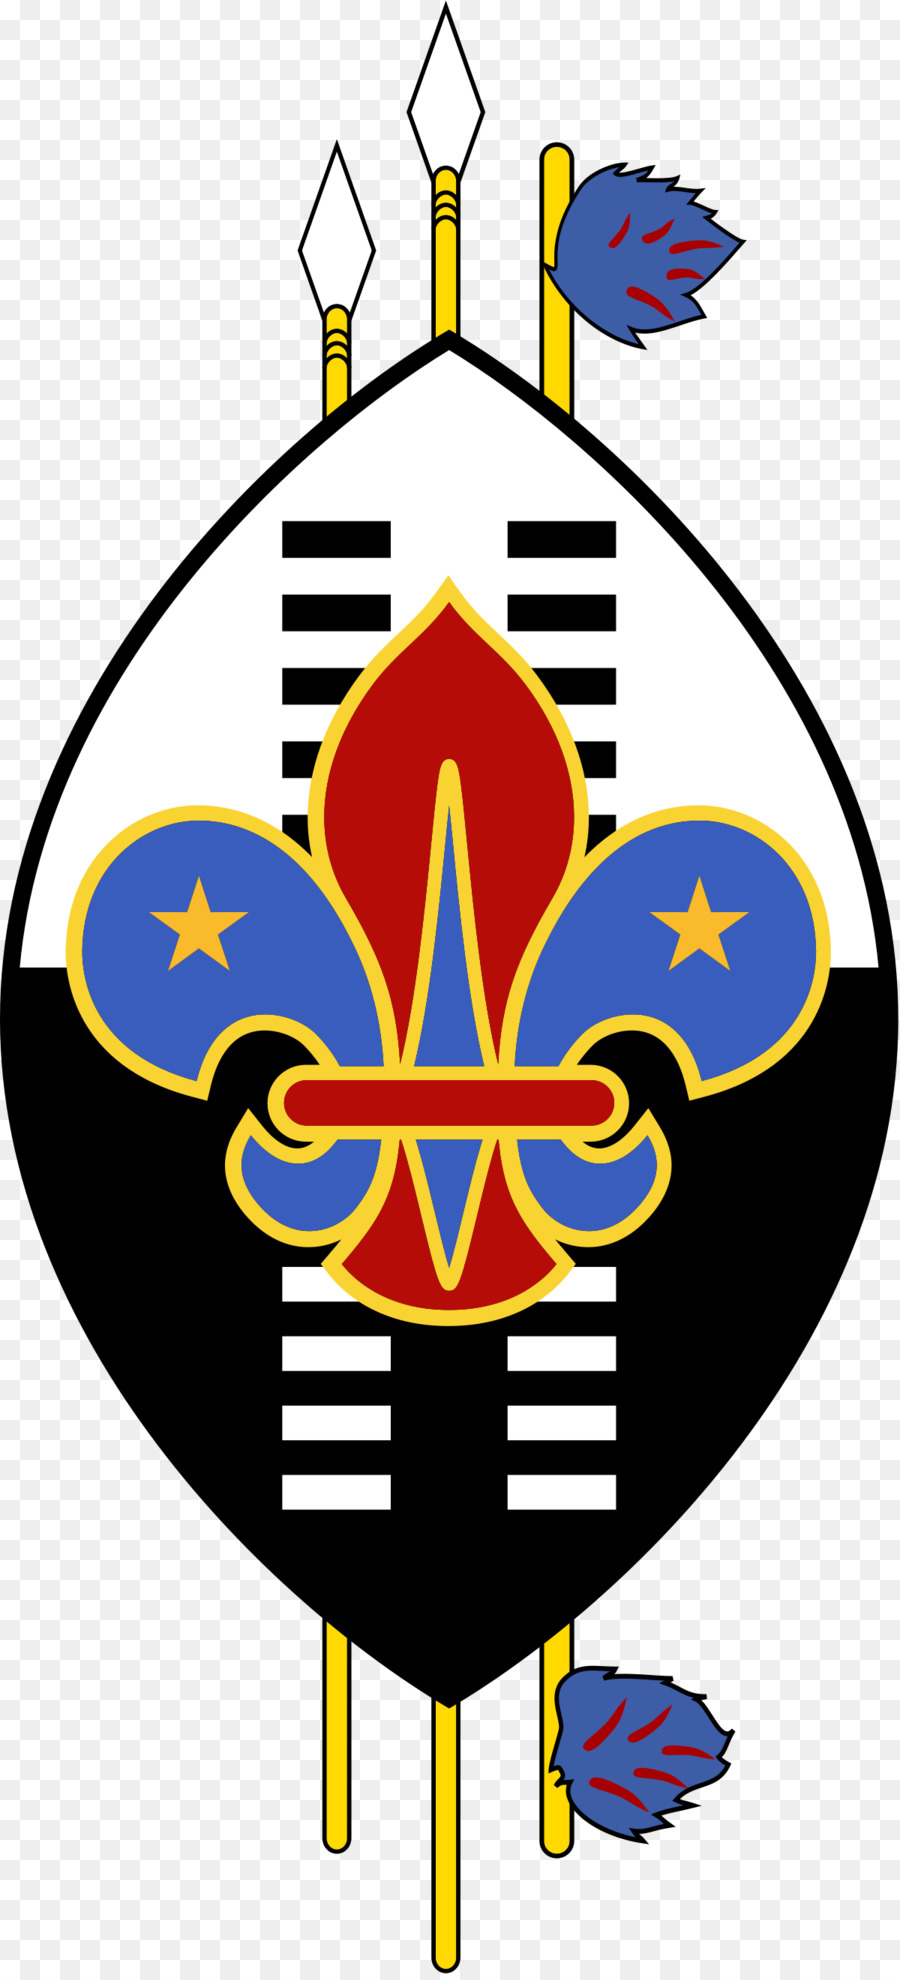 swaziland boy scouts association scouting the scout association rh kisspng com boy scout logo clip art eagle scout logo clip art